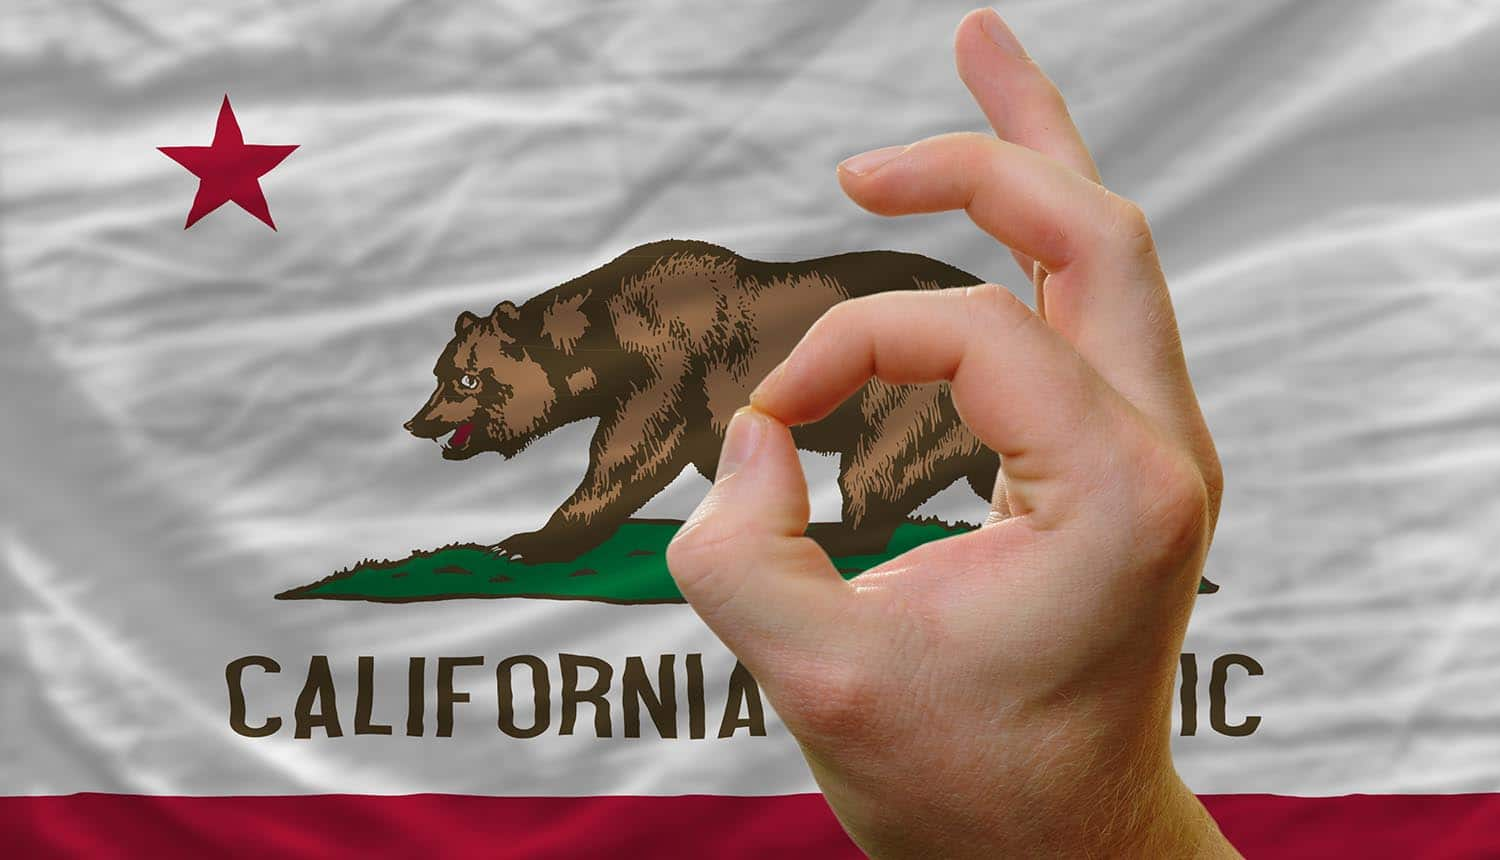 Man with ok gesture in front of flag of California showing approved CPRA changes to privacy rights